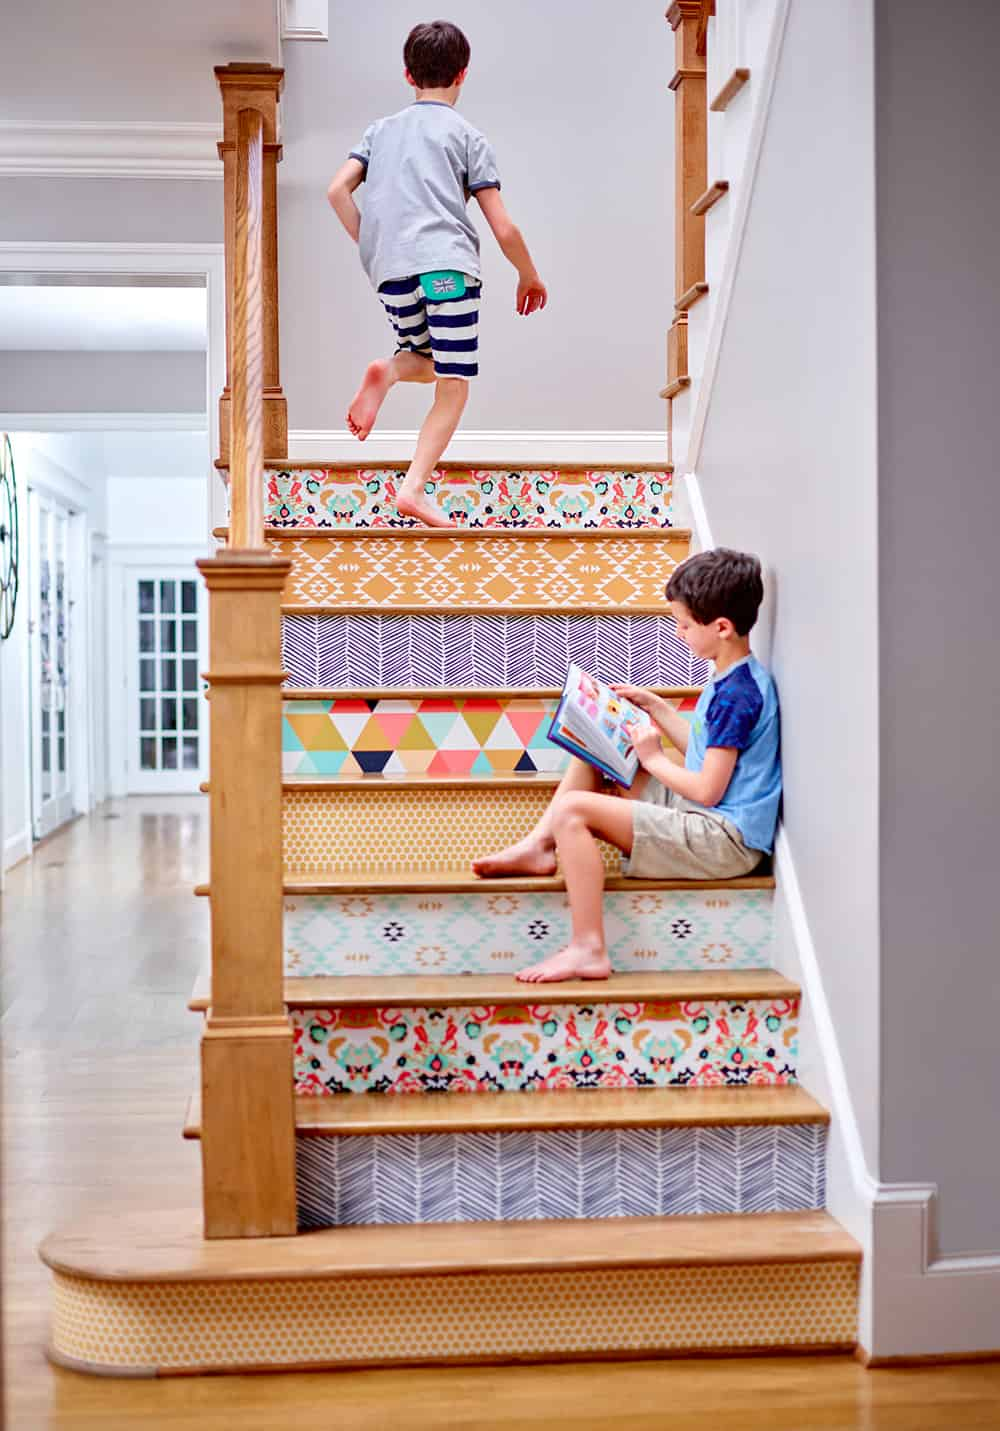 Brighten your way with Spoonflower wallpaper on your stairs | Spoonflower Blog